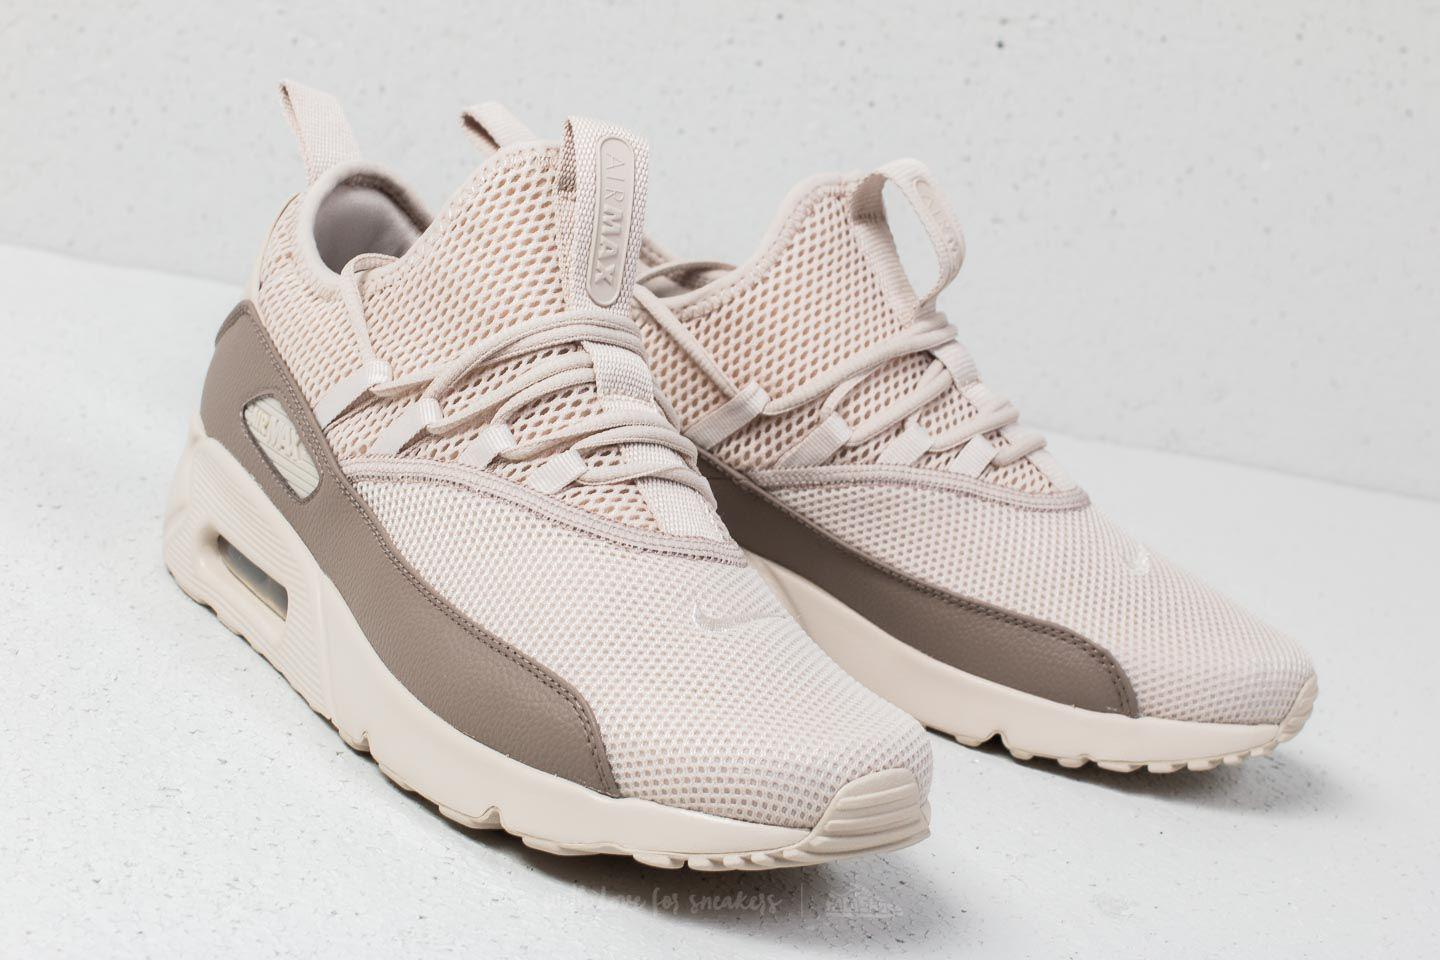 Lyst - Nike Air Max 90 Ez Sepia Stone  Desert Sand in Natural for Men 37dfd8720